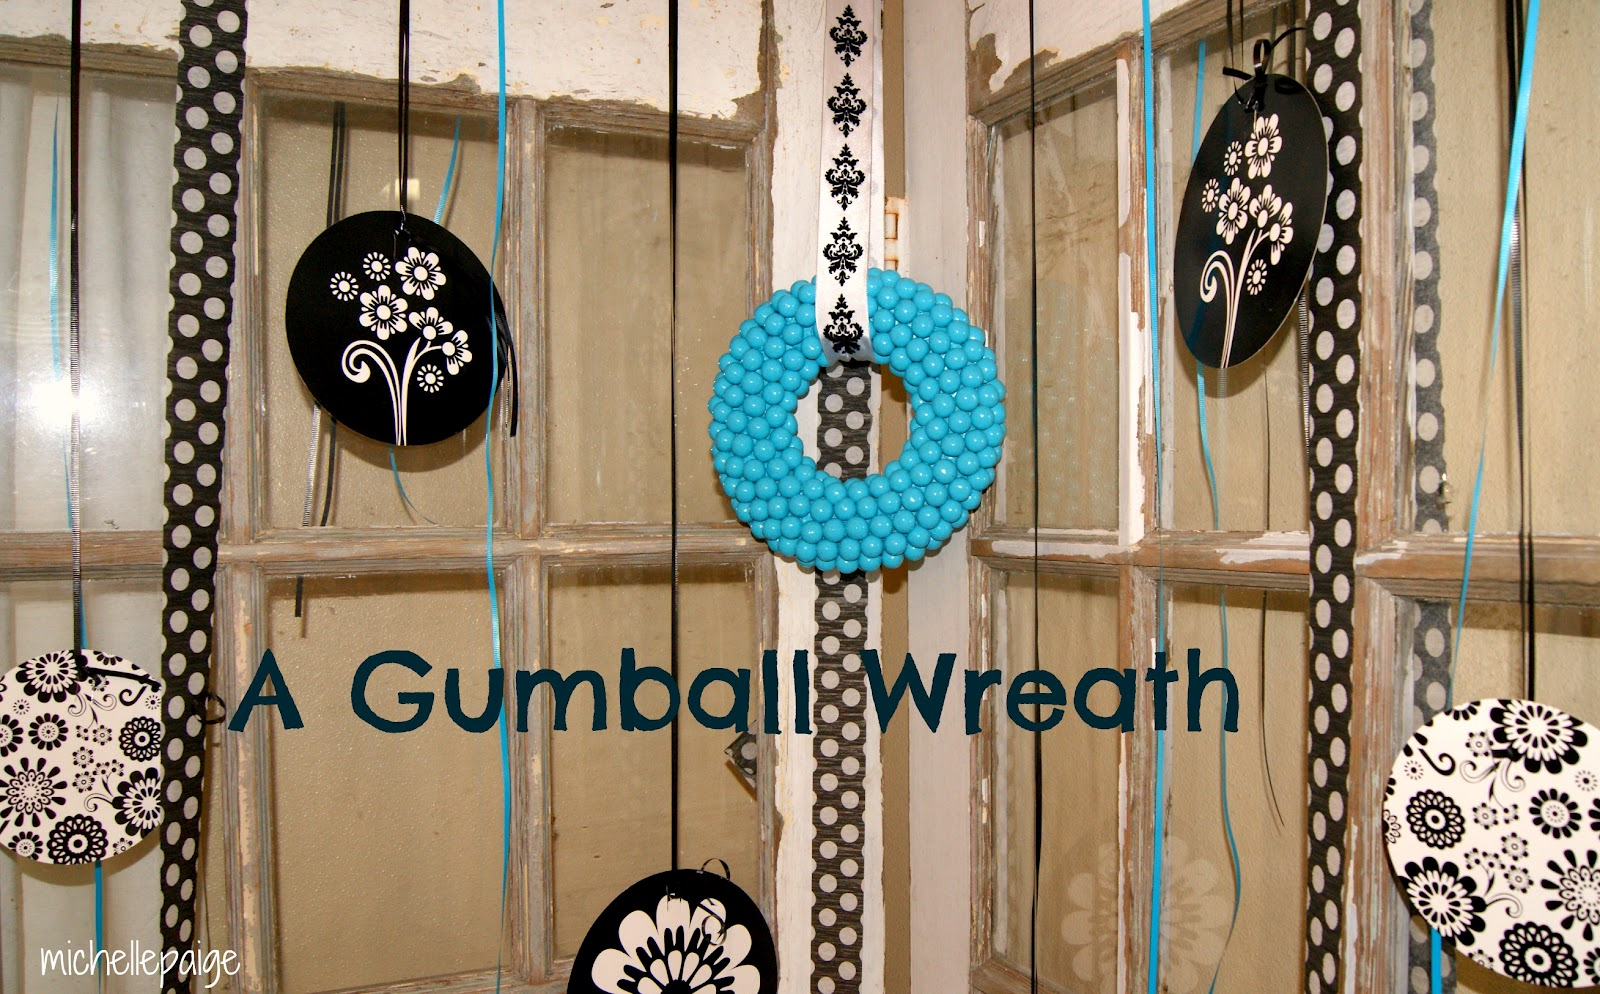 michelle paige blogs: Gumball Wreath